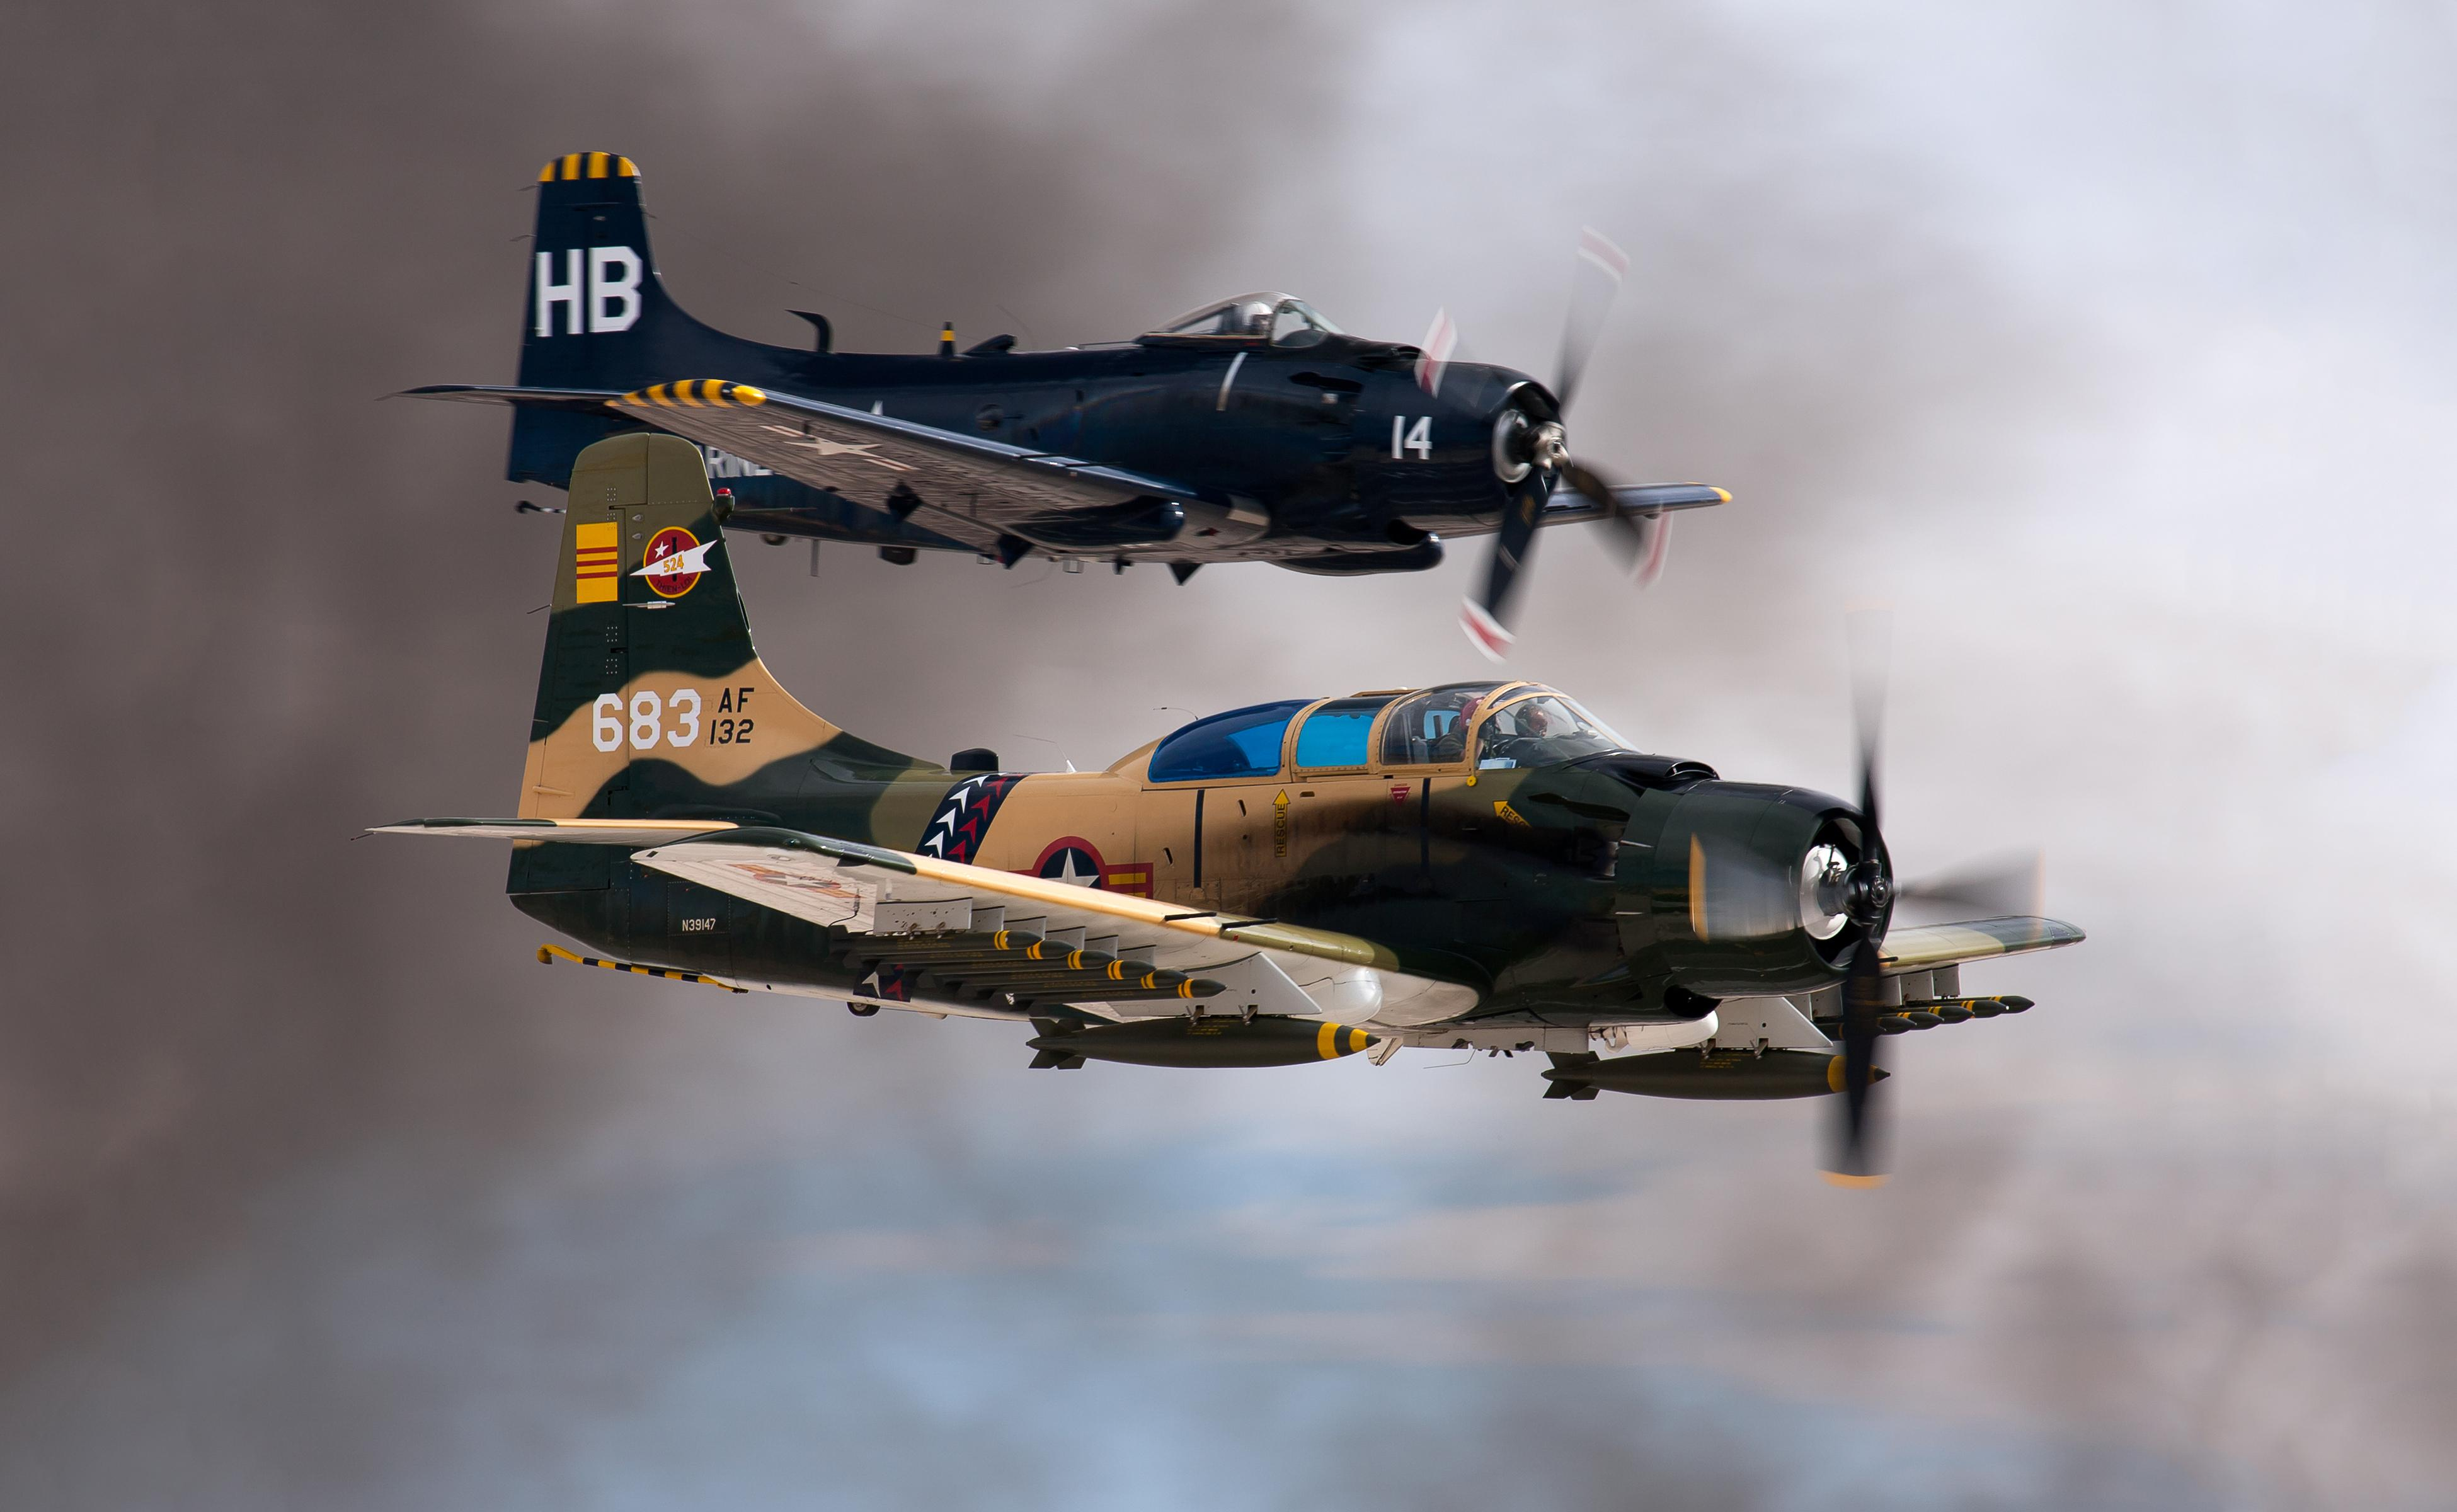 Skyraiders, more famous for attack missions than for ECM, fly fully loaded at a 2014 airshow.